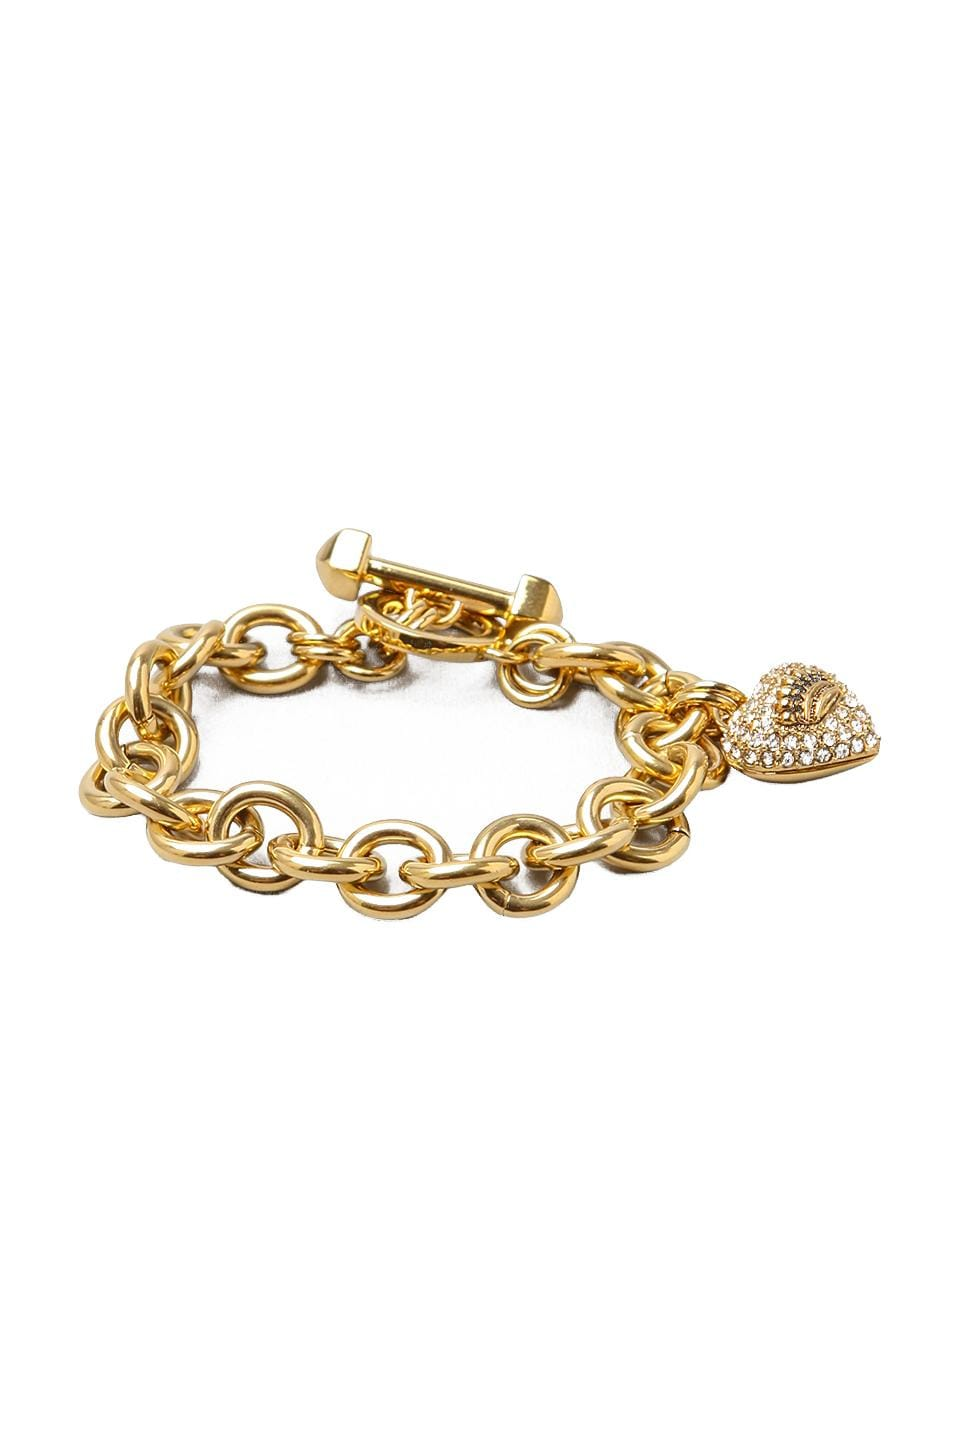 Juicy Couture Pave Icon Bracelet in Gold